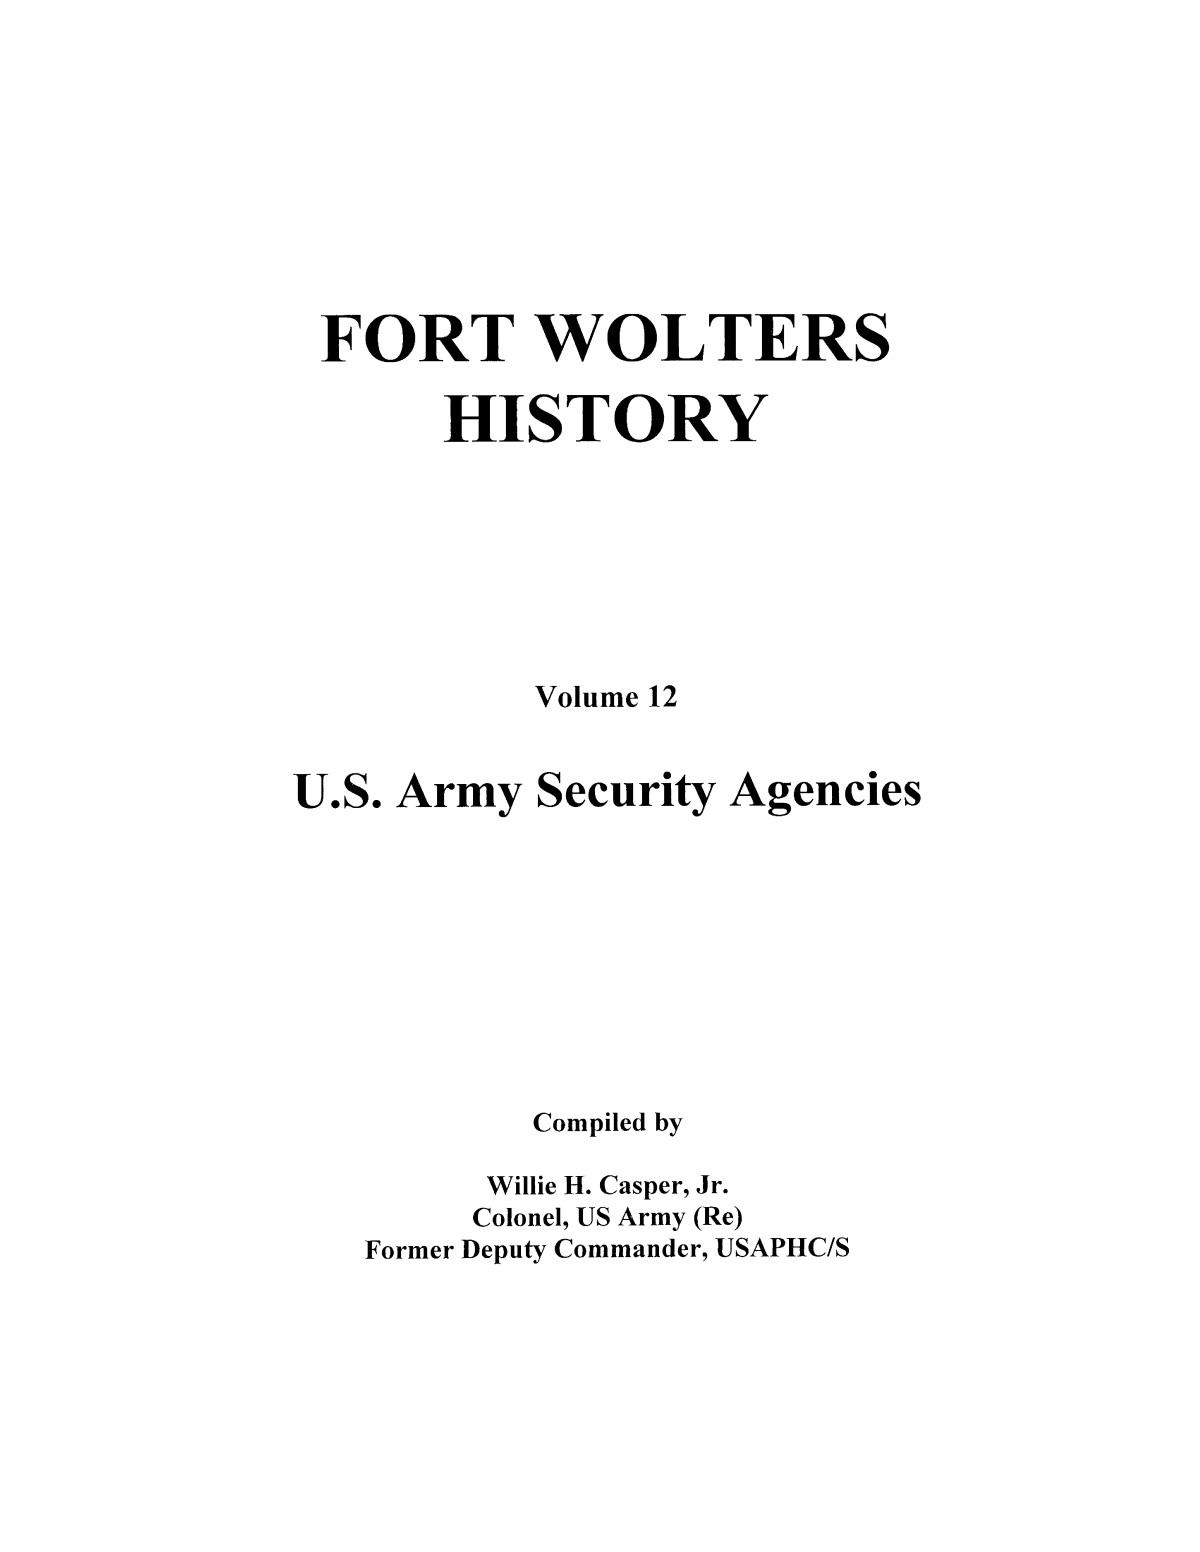 Pictorial History of Fort Wolters, Volume 12: U.S. Army Security Agencies                                                                                                      [Sequence #]: 1 of 163